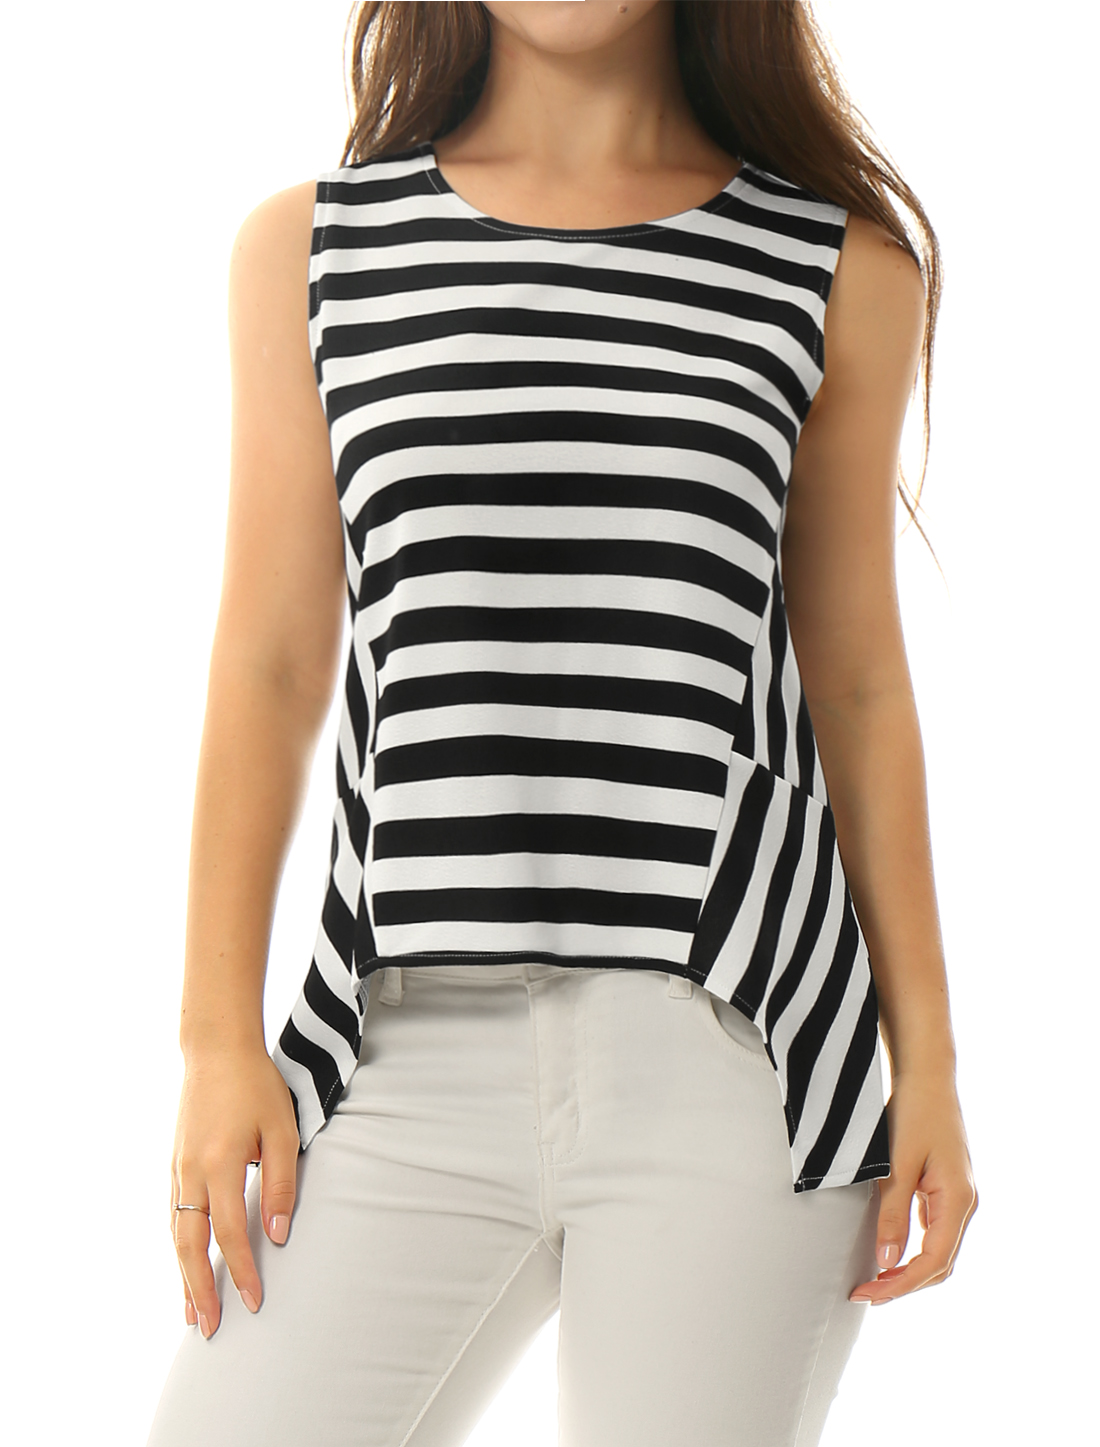 Women Stripes Asymmetric Hem Round Neck Tunic Tank White Black XS